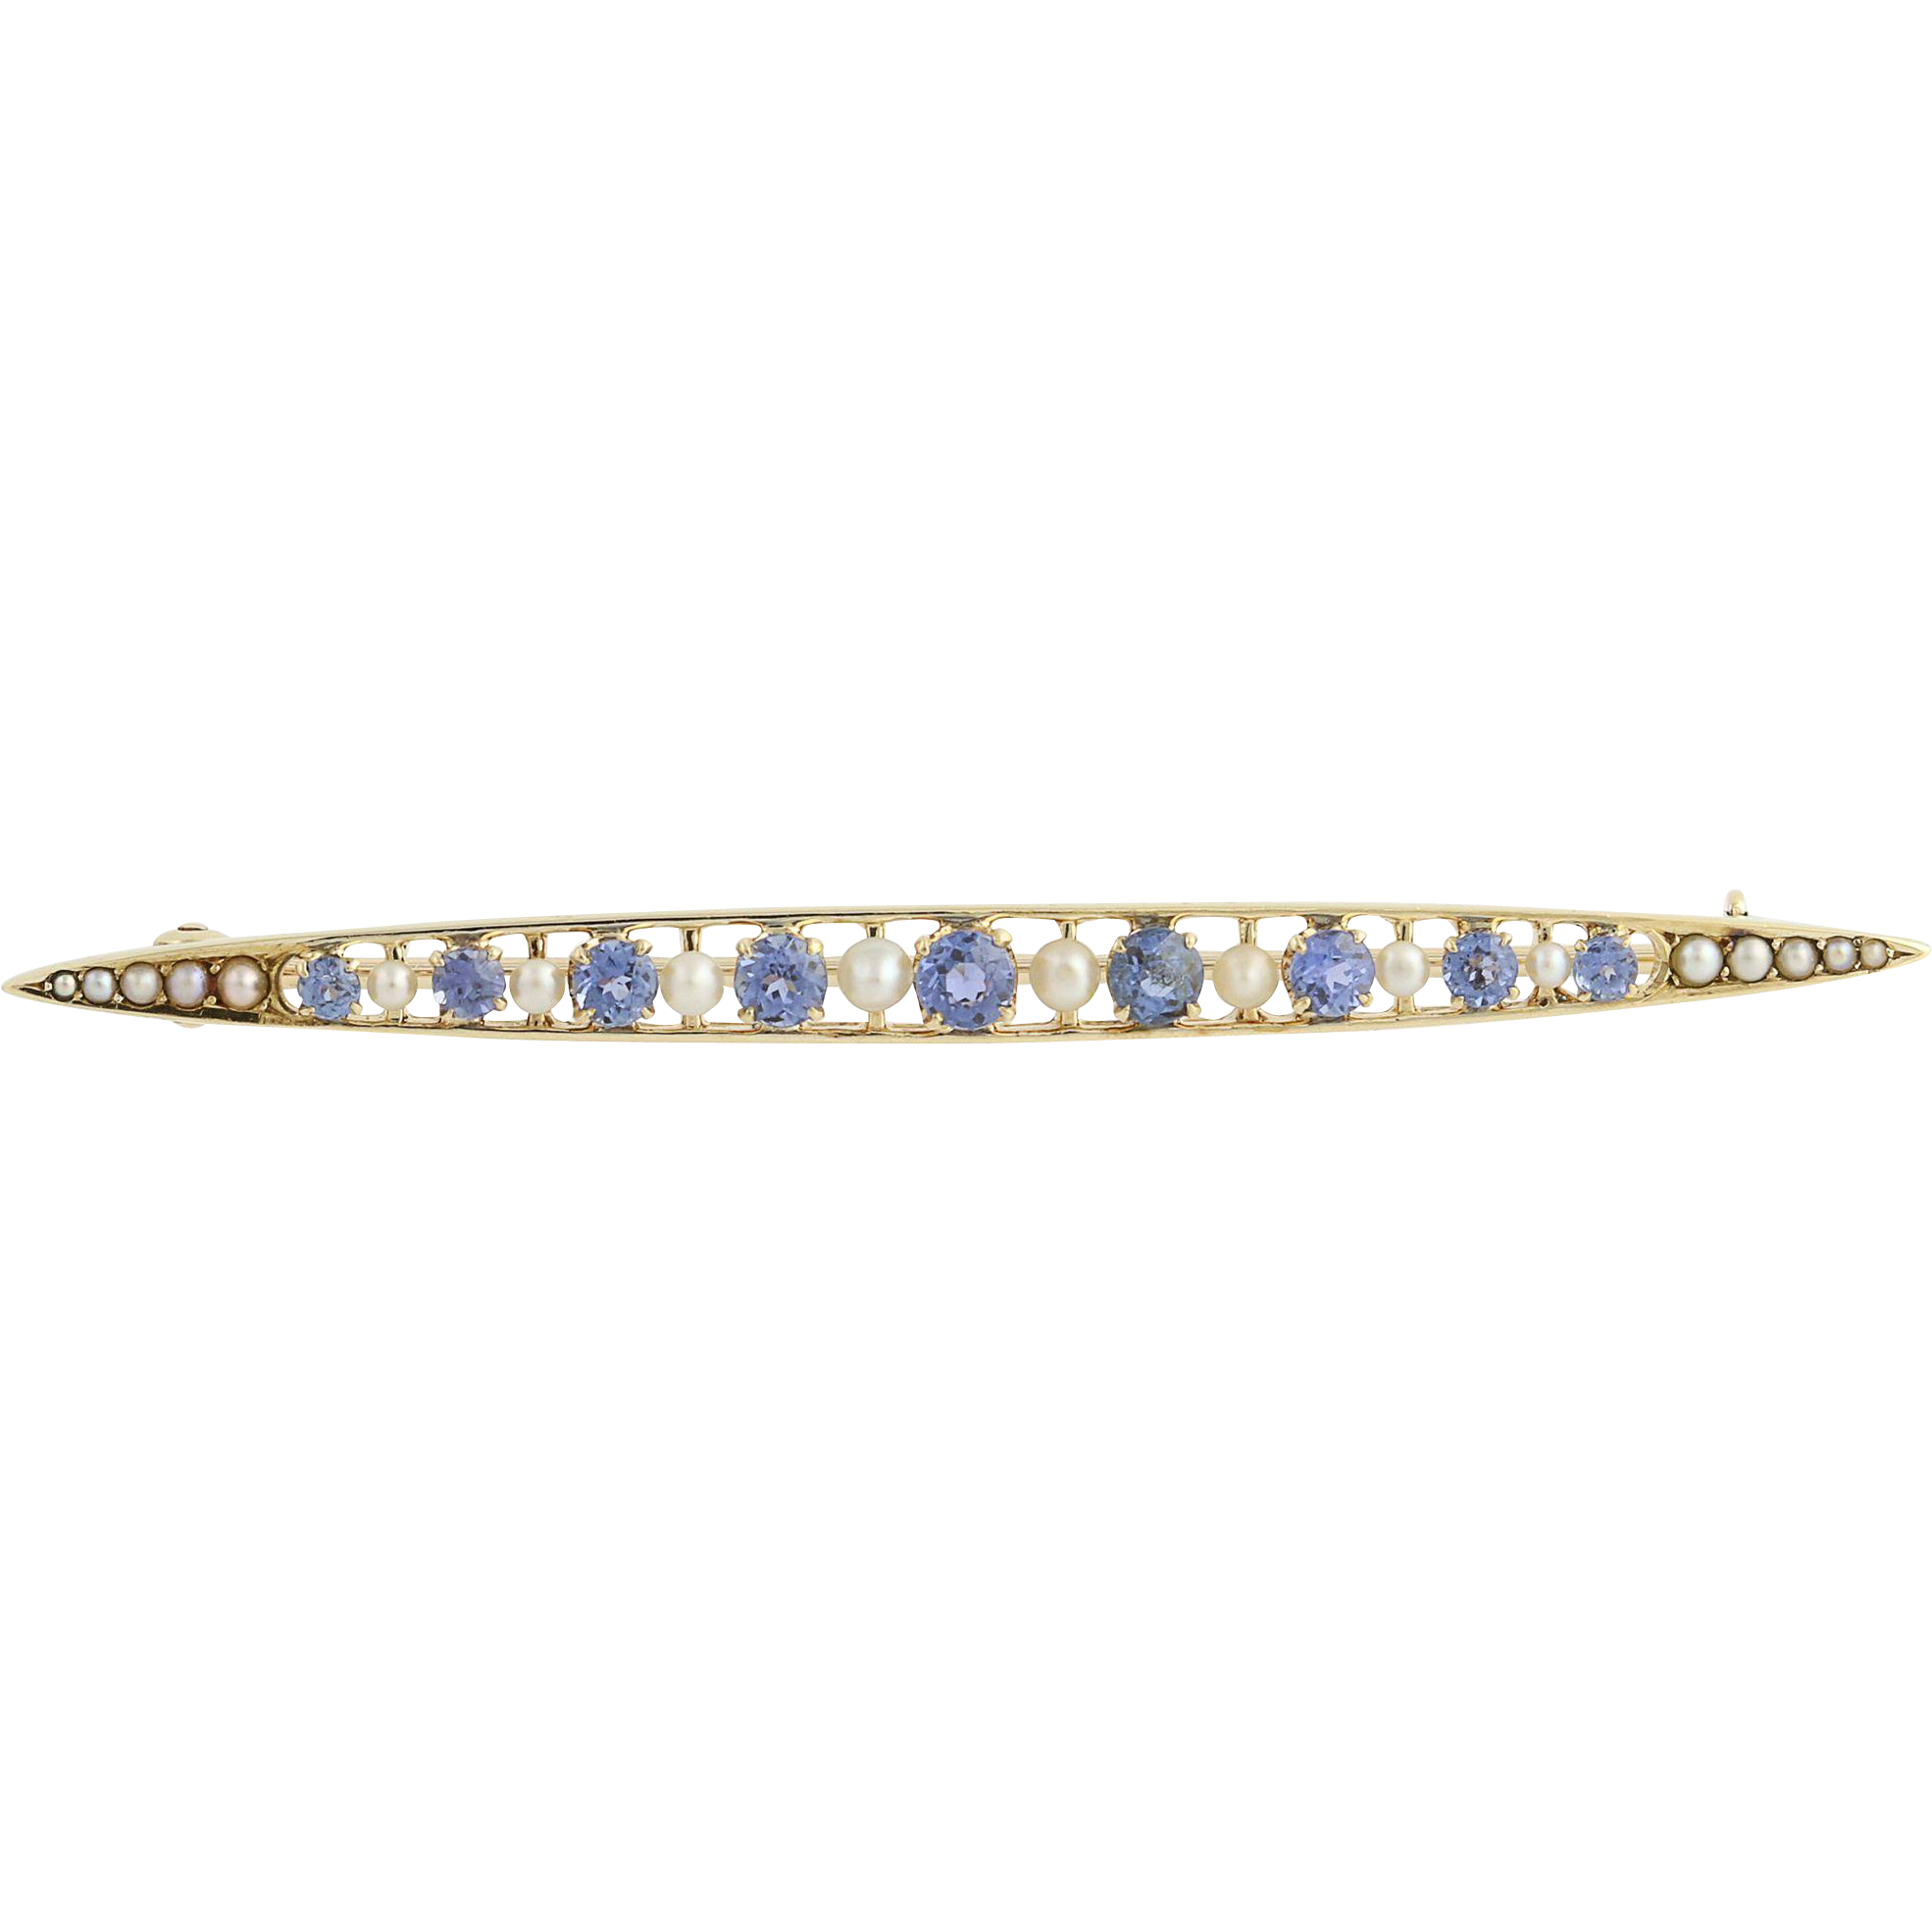 Edwardian Era Sapphire & Seed Pearl Brooch - 14k Yellow Gold Genuine 1.04ctw